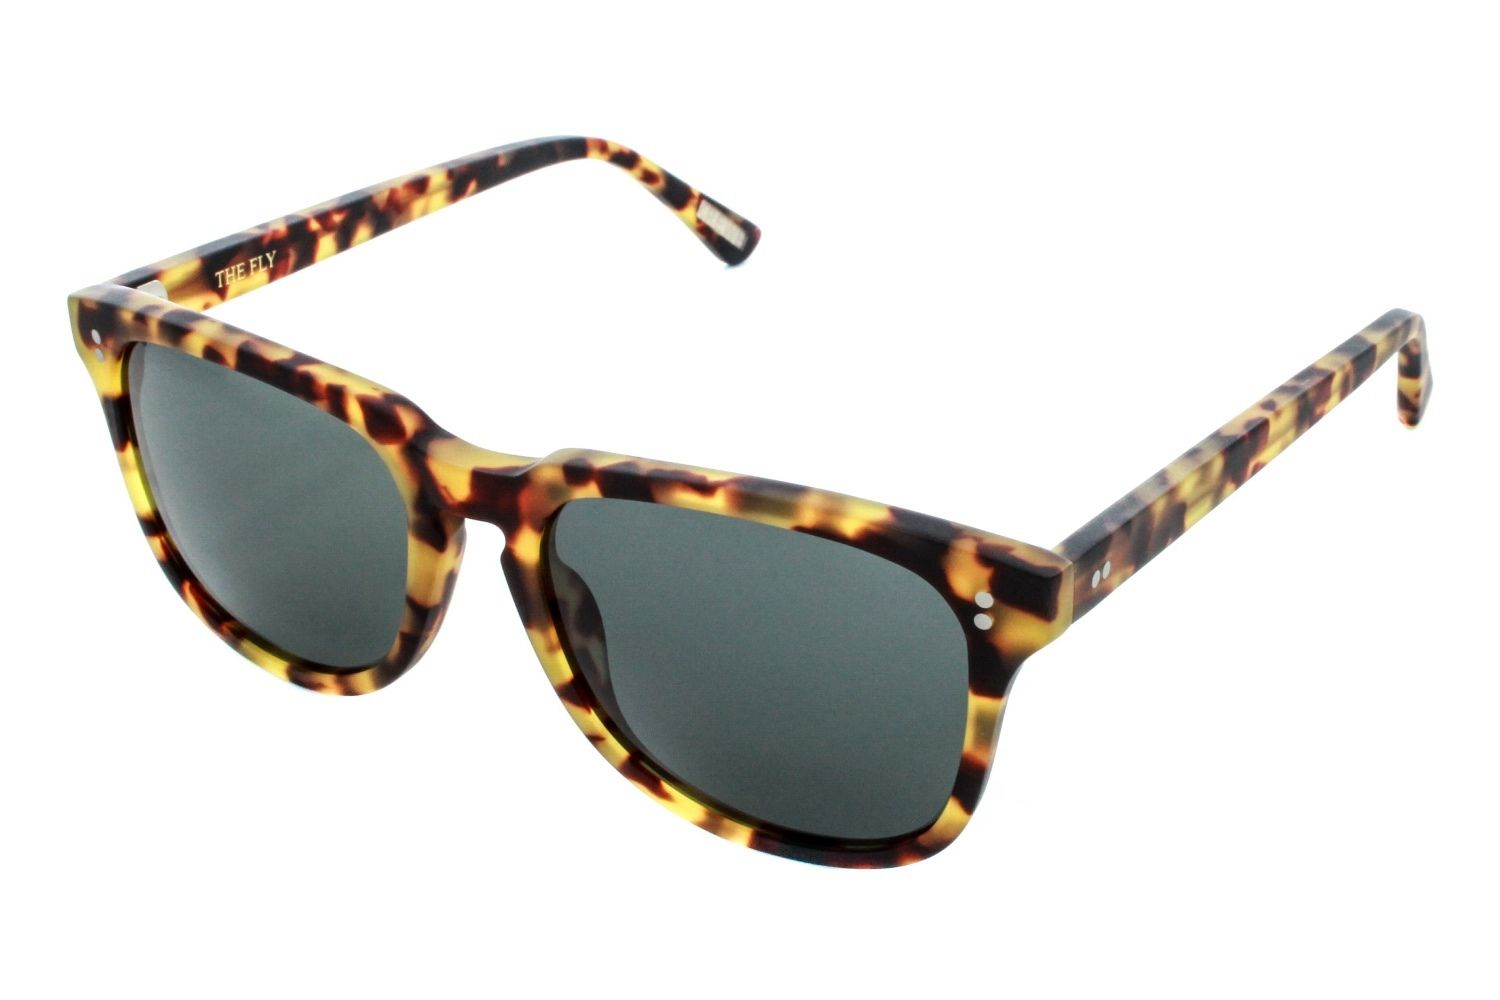 2f757ce555 krewe the fly sunglasses - Sunglasses and Style Blog - ShadesDaddy.com